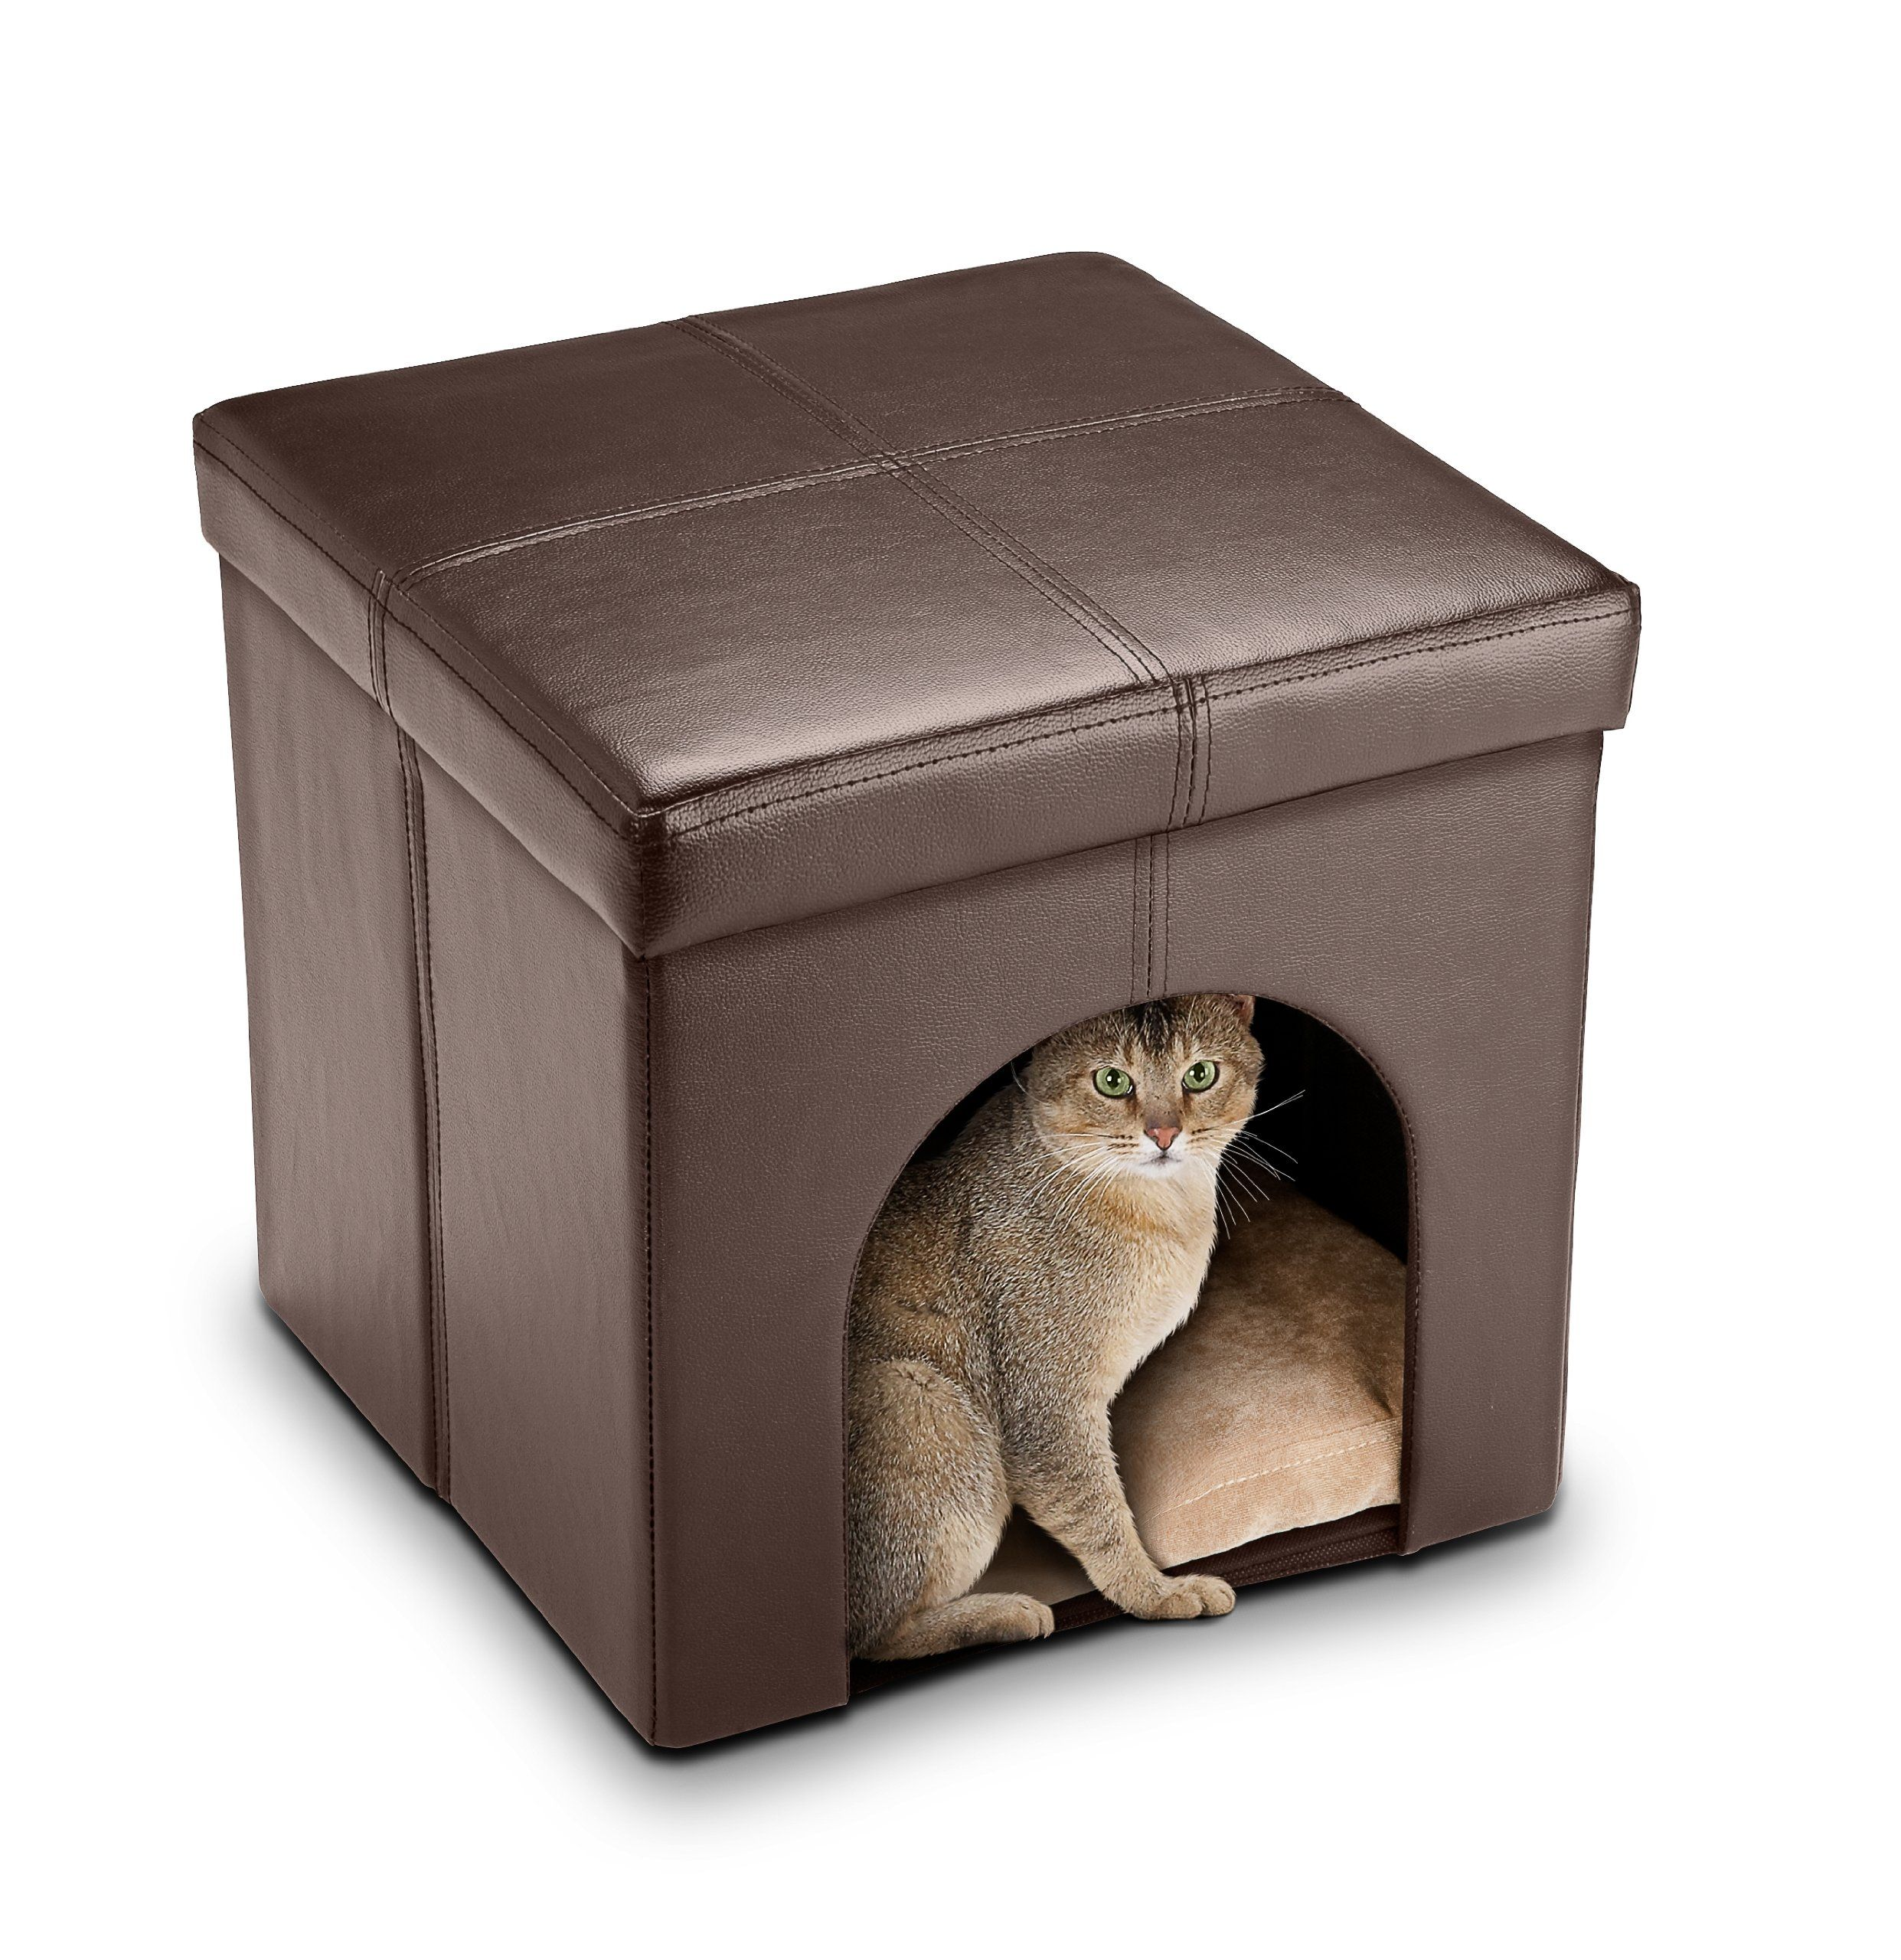 Abc Pet Cat Ottoman Bed Cat Bed Pet Bed Furniture Cat Bed Furniture